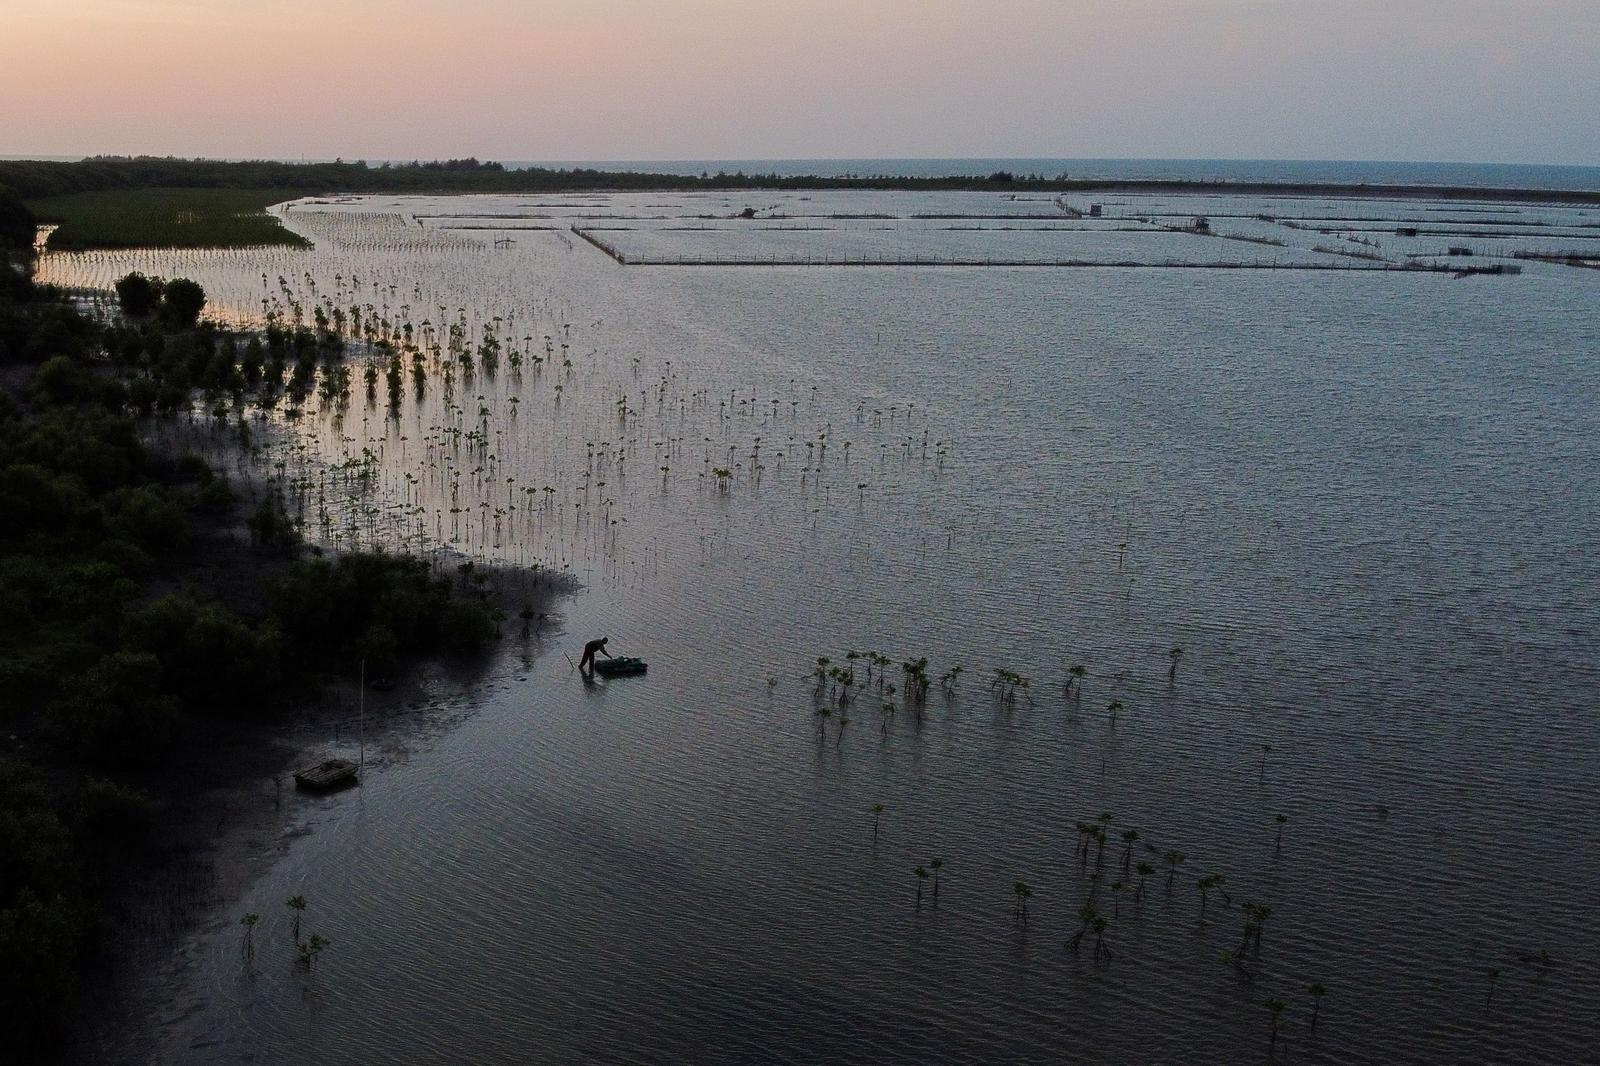 A local pond farmer is seen among the newly planted mangrove trees at Tiris beach during sunset in Pabeanilir village, Indramayu regency, West Java province, Indonesia, March 11, 2021. Photo: Reuters